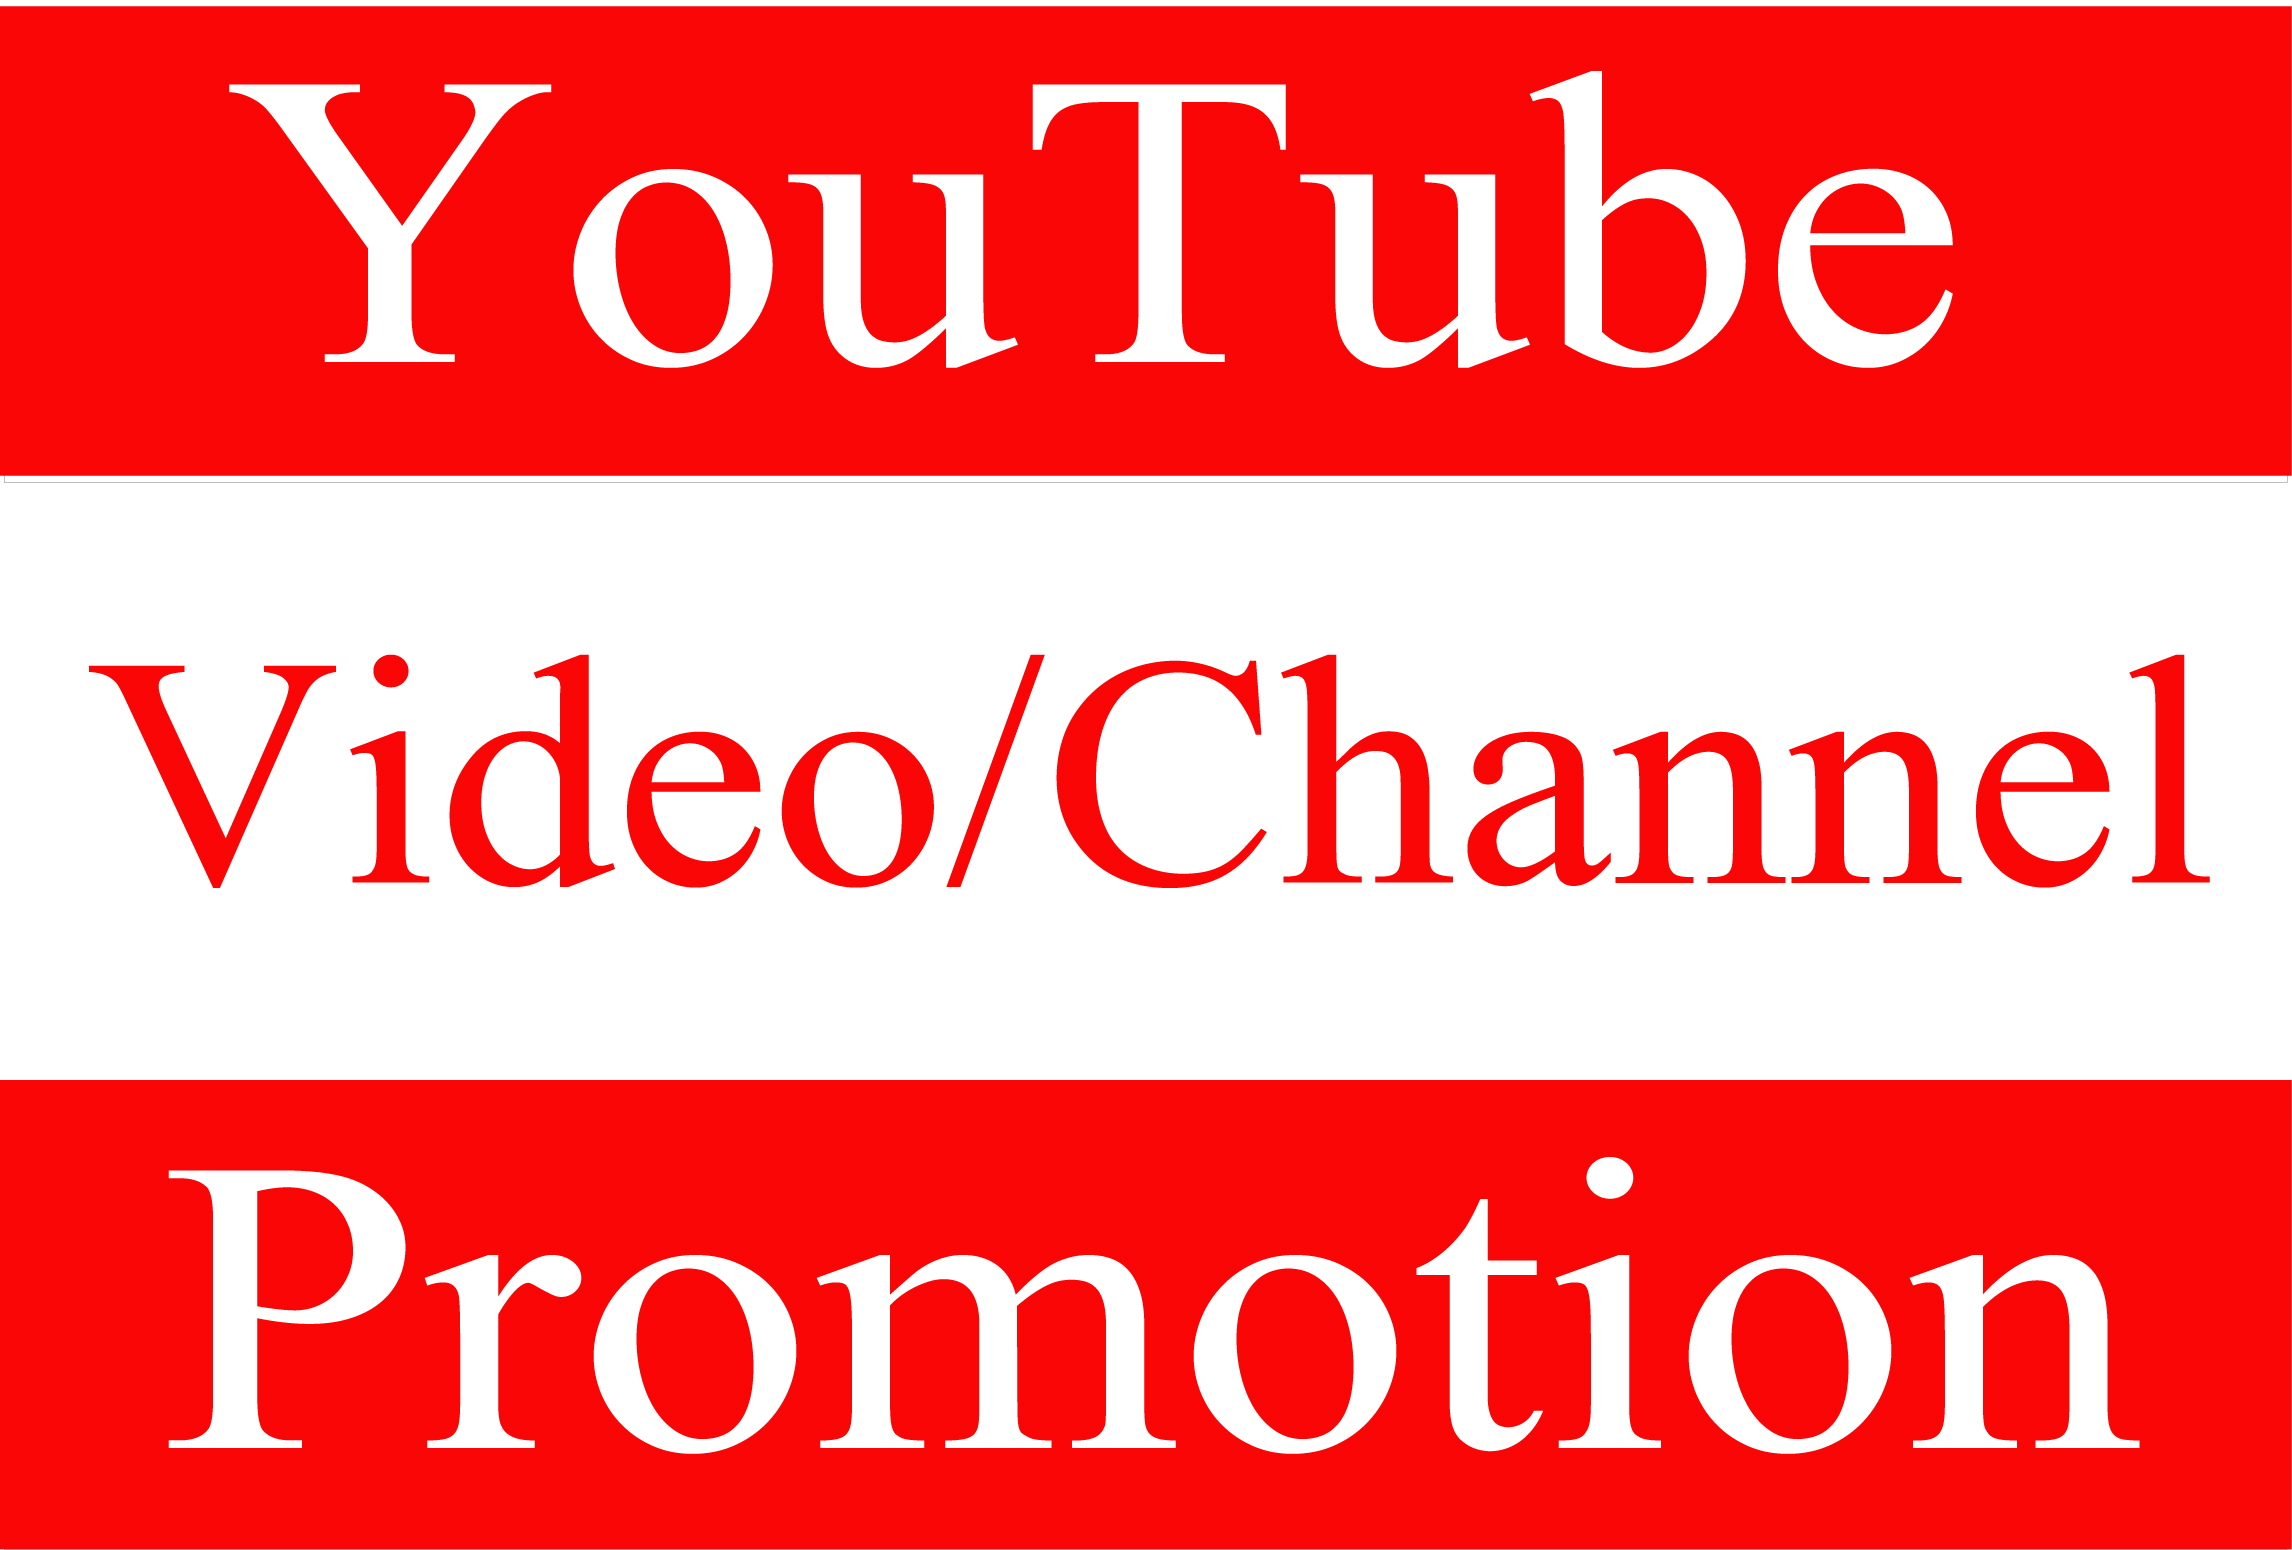 Super Fast Video/Channel Promotion High Quality